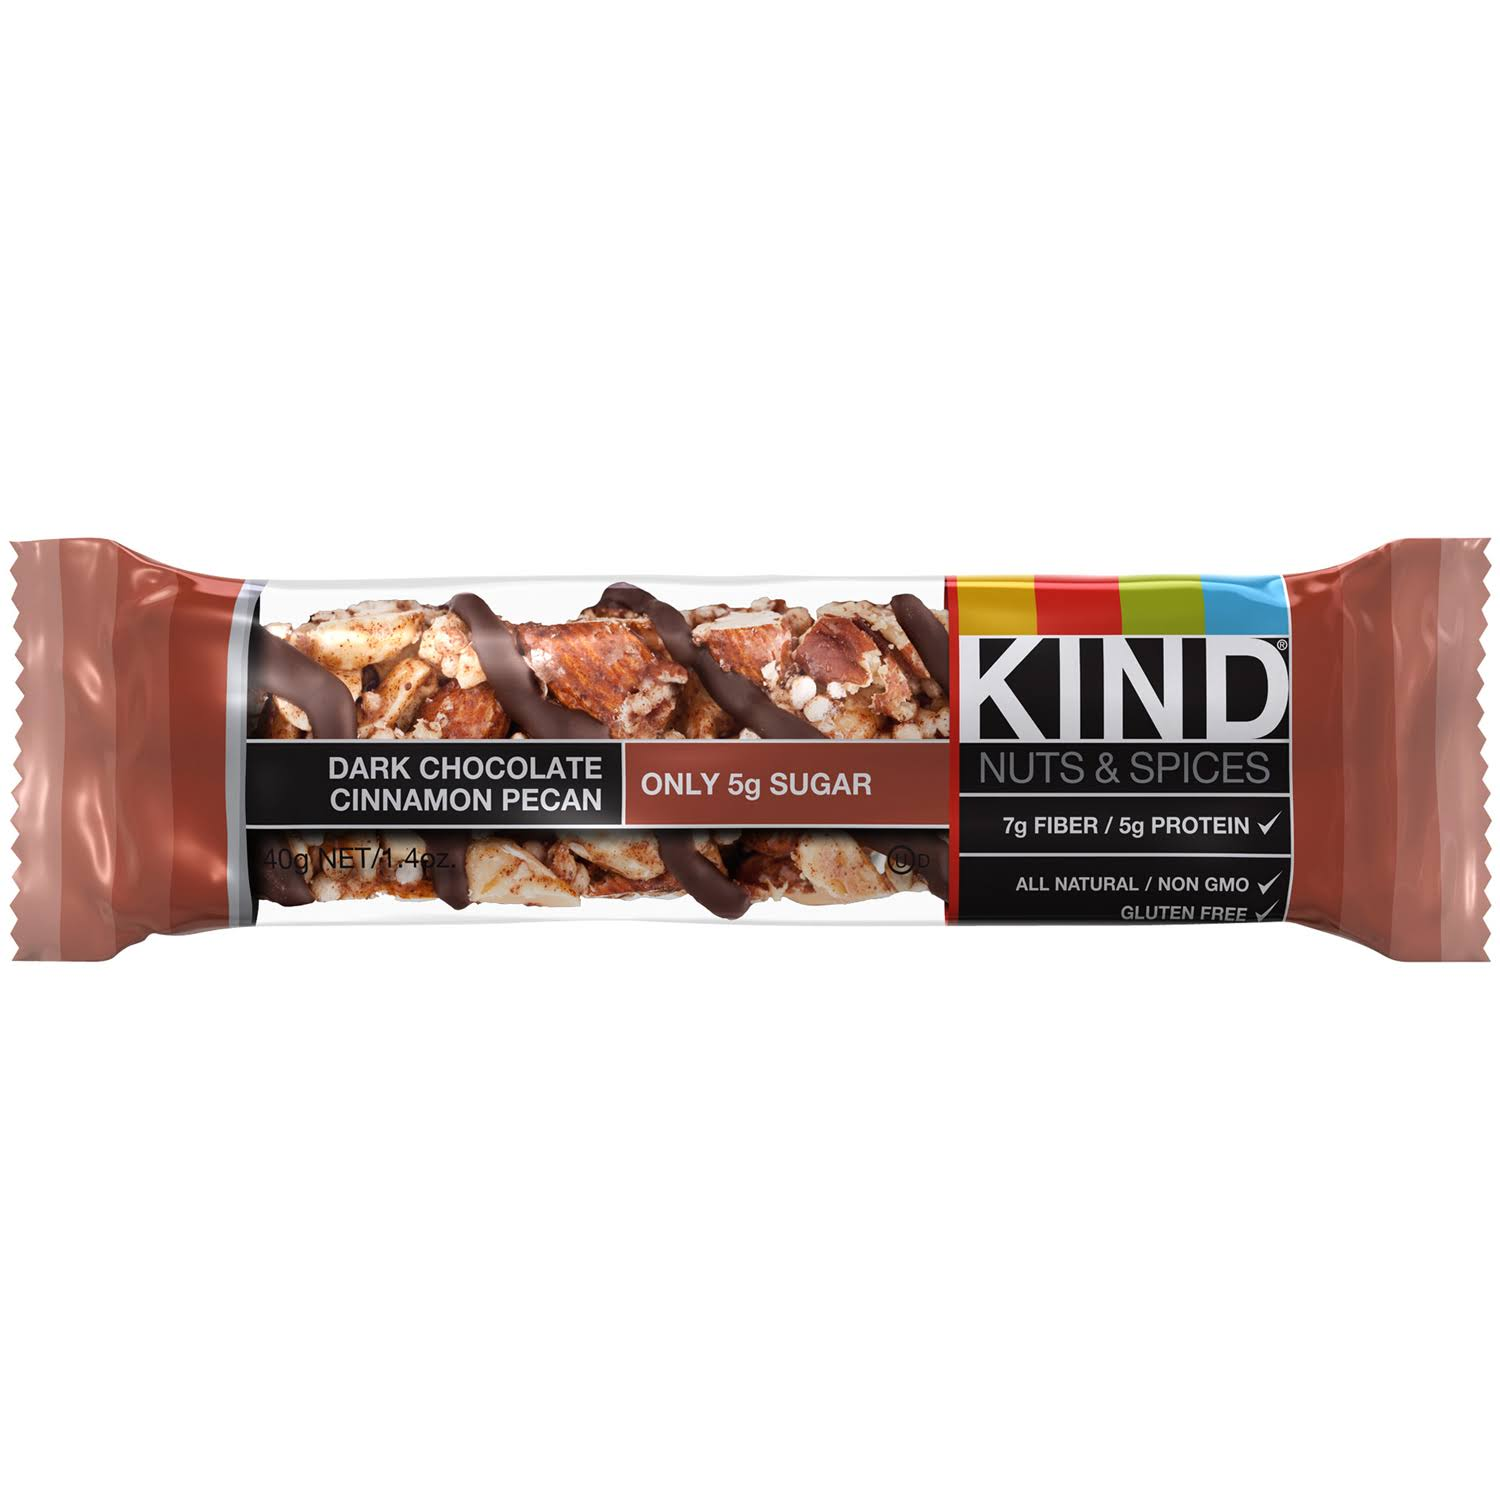 Kind Nuts & Spices Dark Chocolate Cinnamon Pecan Bar - 12 Pack